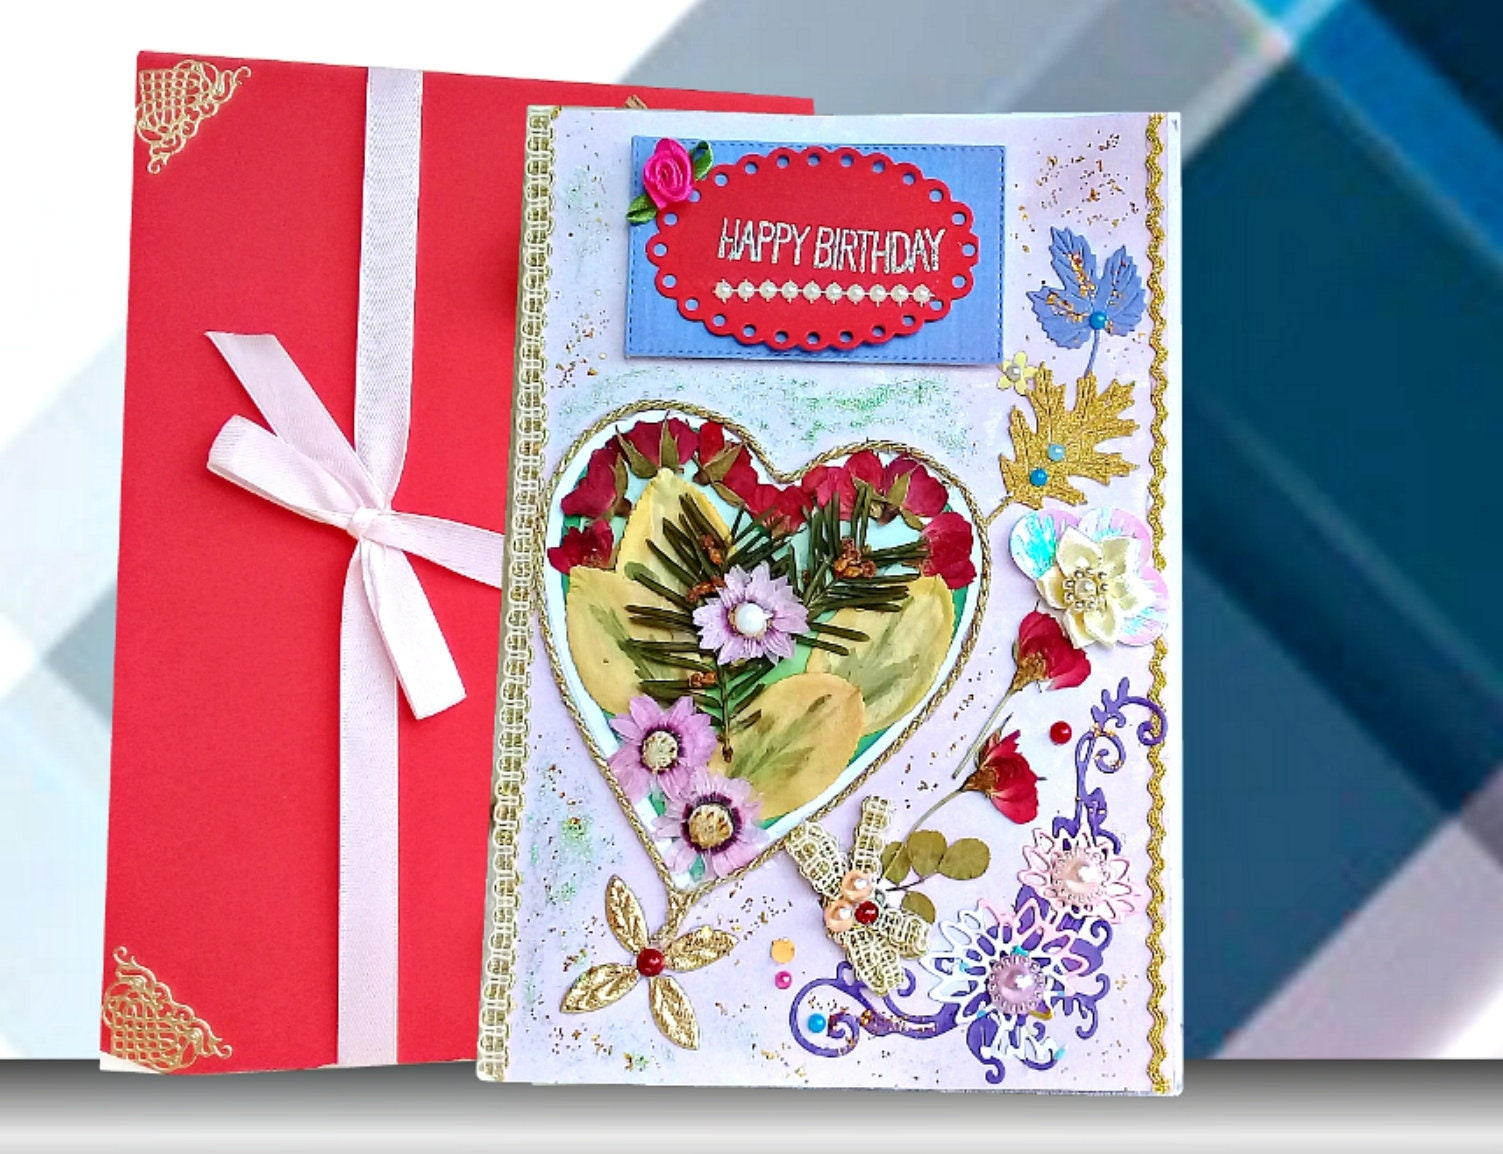 Happy Birthday Cards Mom Wife Card For Her Handmade Boxed Sister Girlfriend